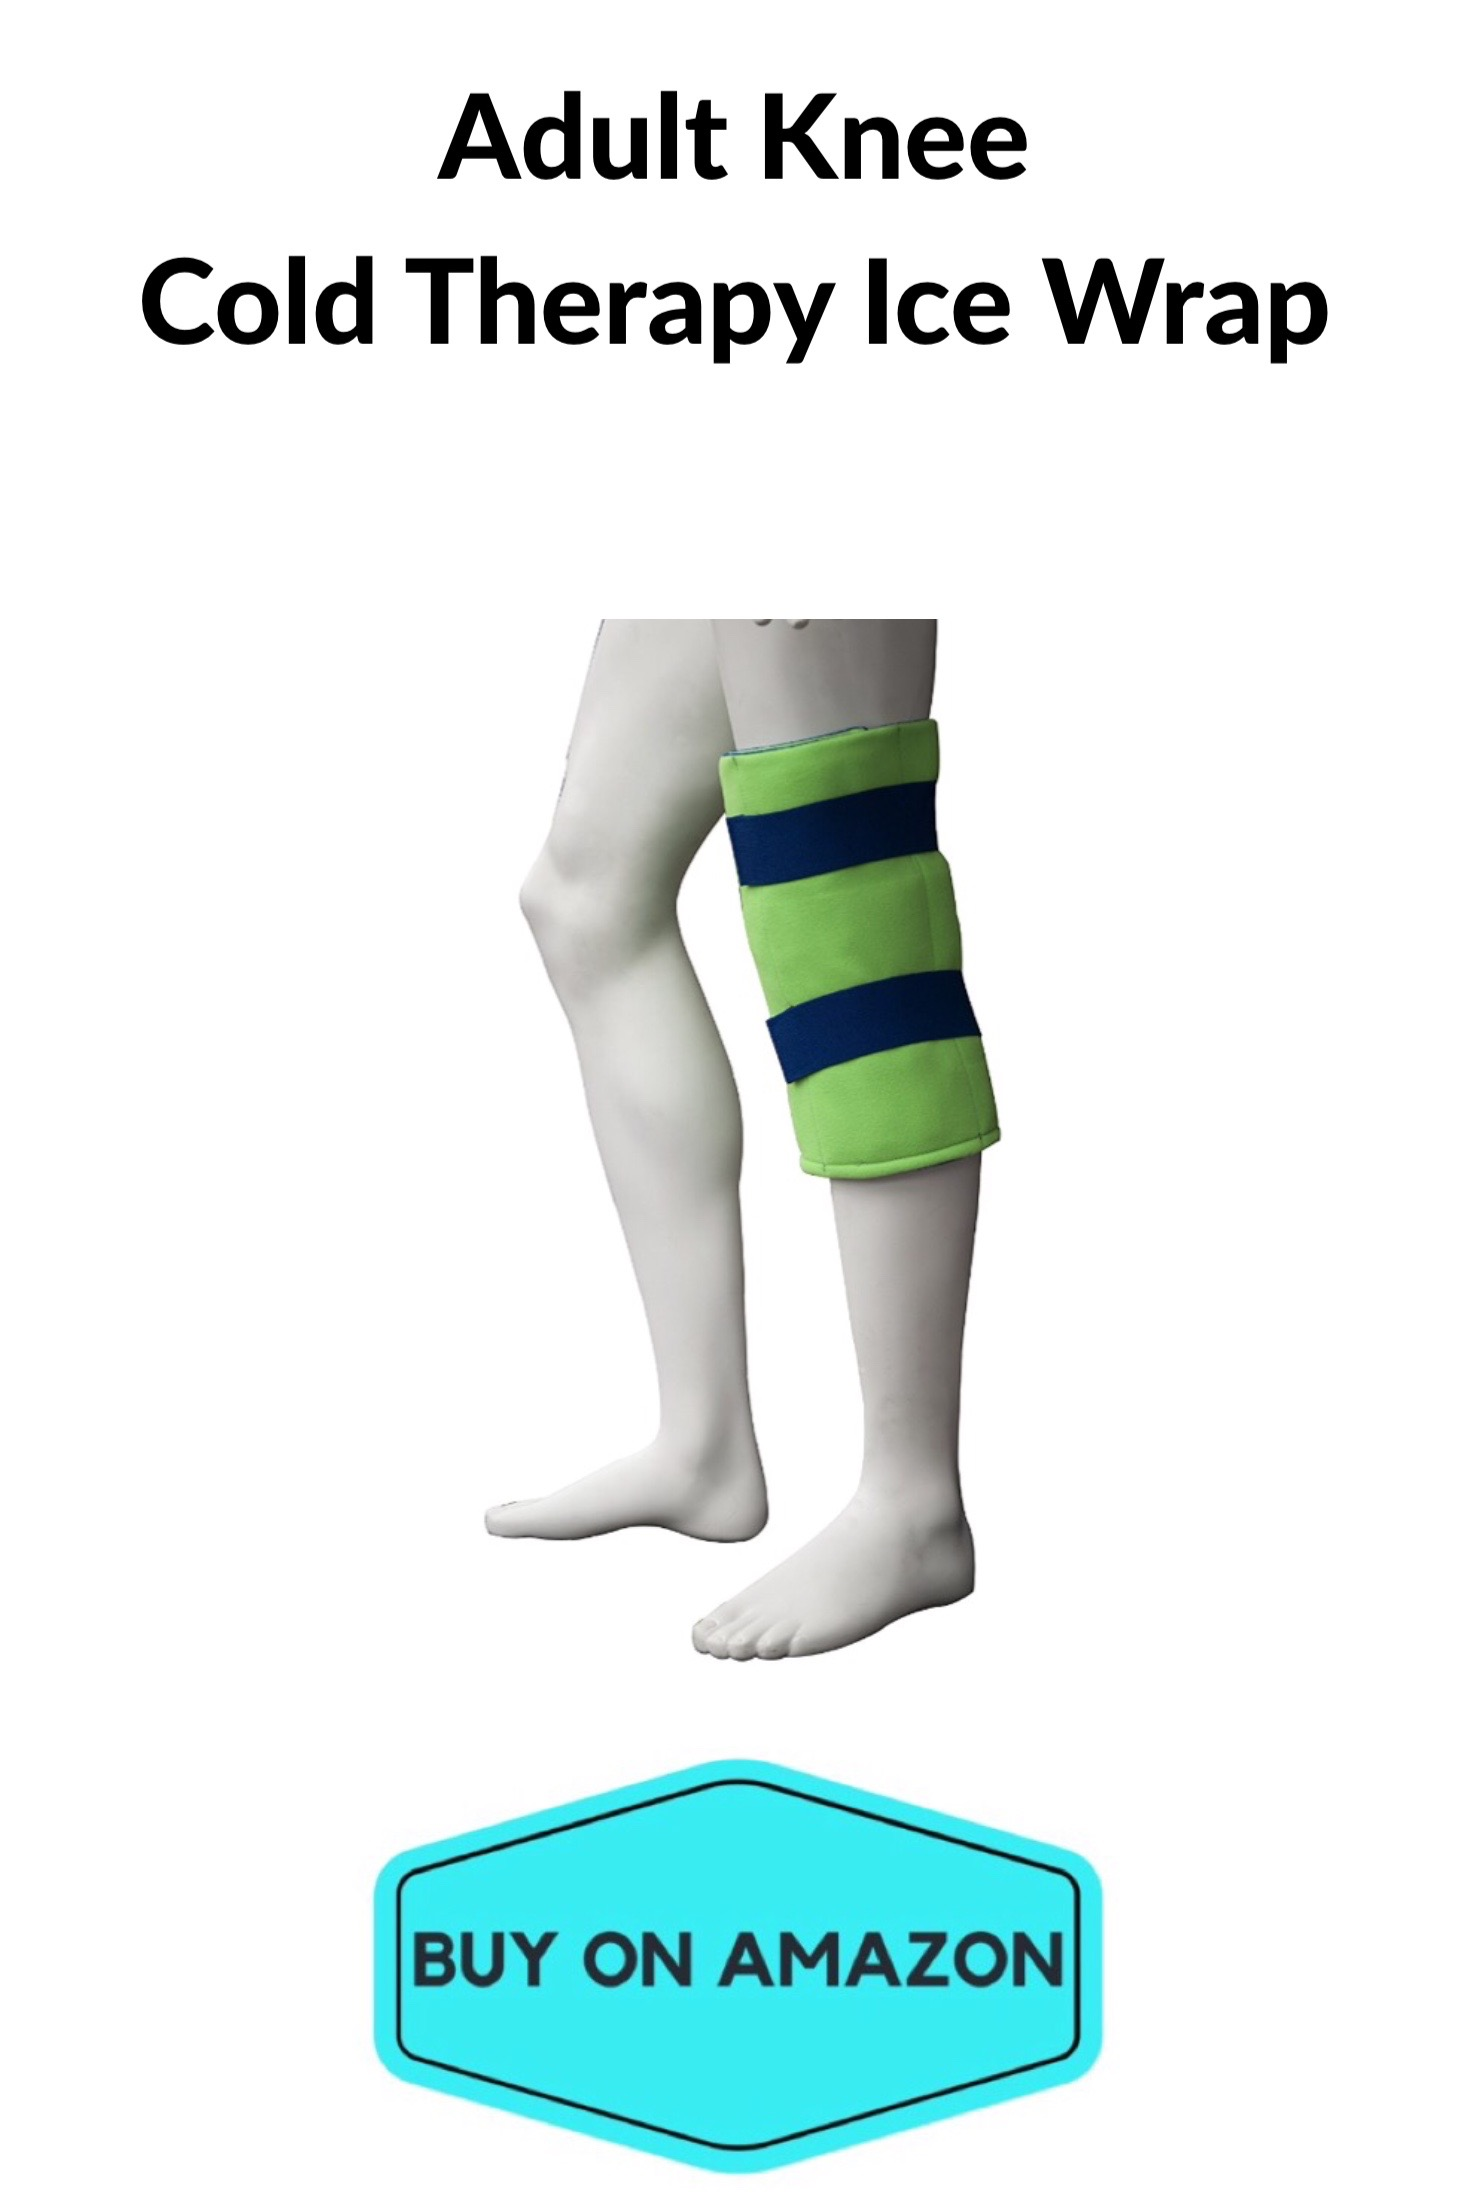 Adult Knee Cold Therapy Ice Wrap